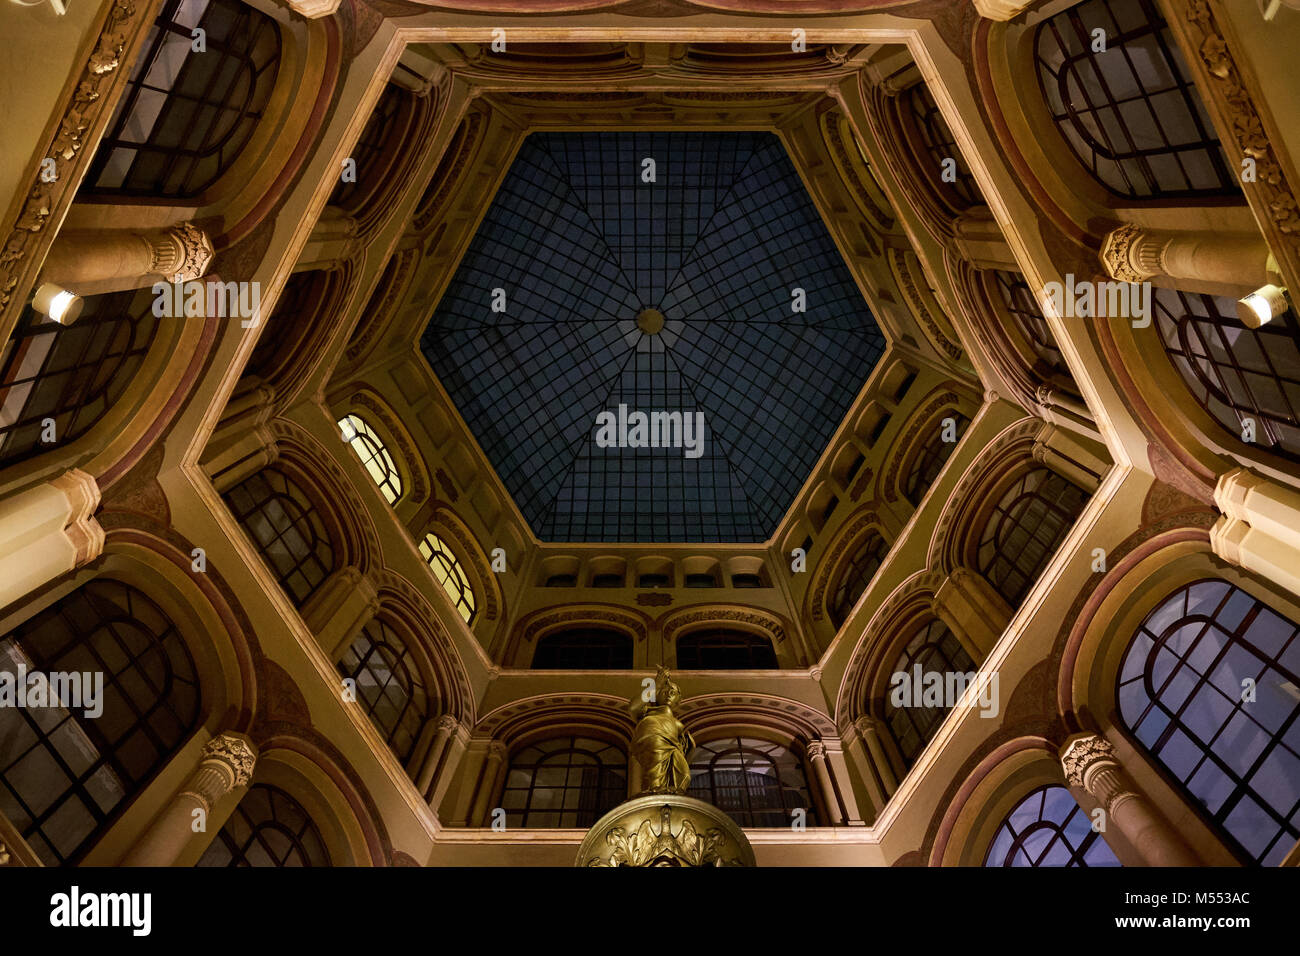 Vienna / Austria - February 16th 2018: Looking up into the dome in Palais Ferstel along Ferstel Passage in central - Stock Image